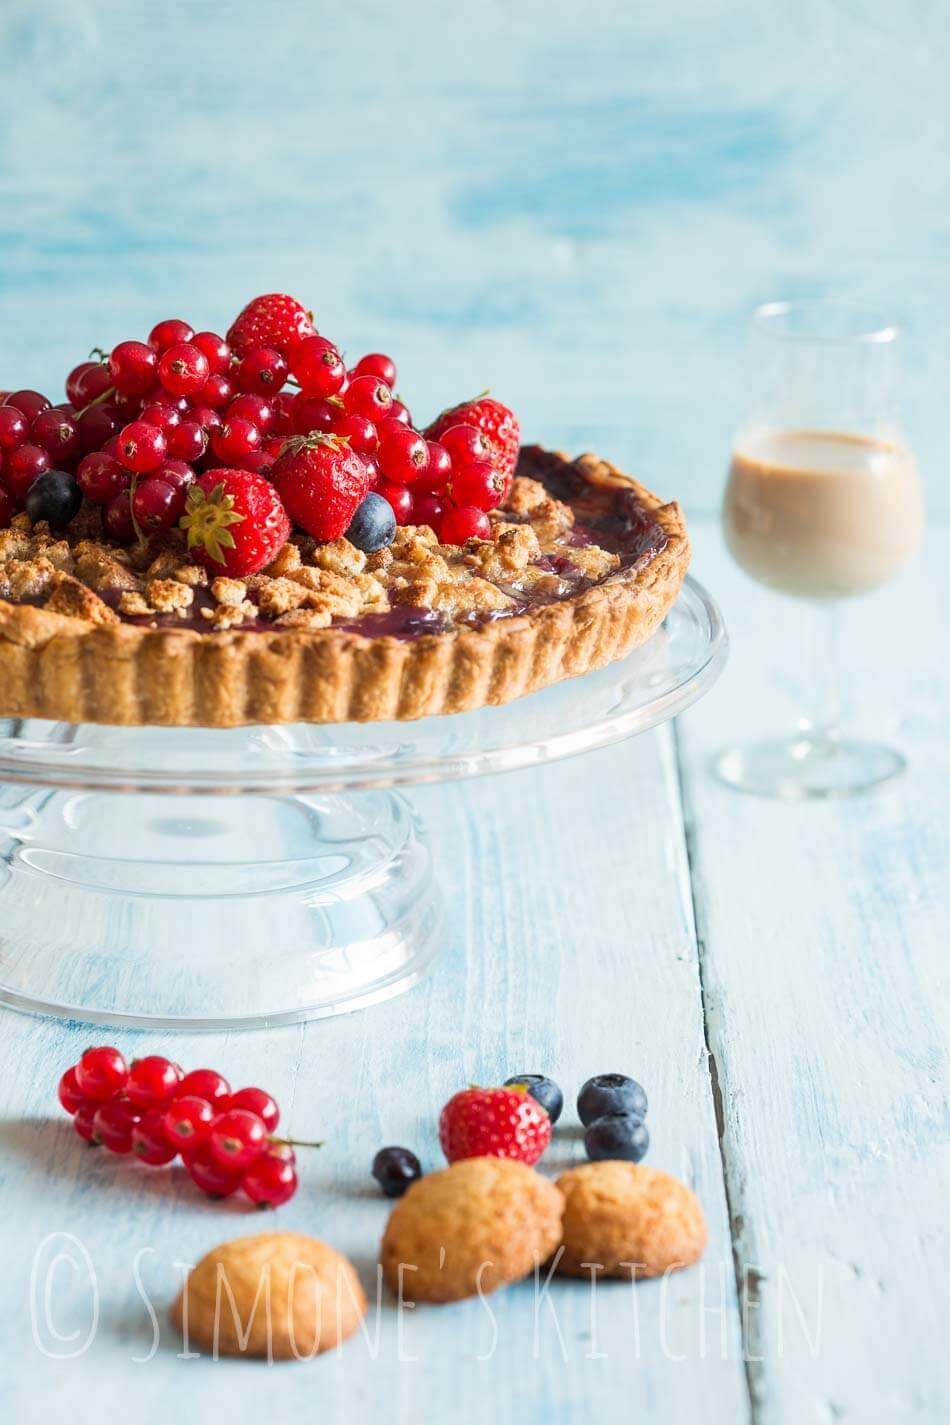 Pie with fresh fruits | insimoneskitchen.com